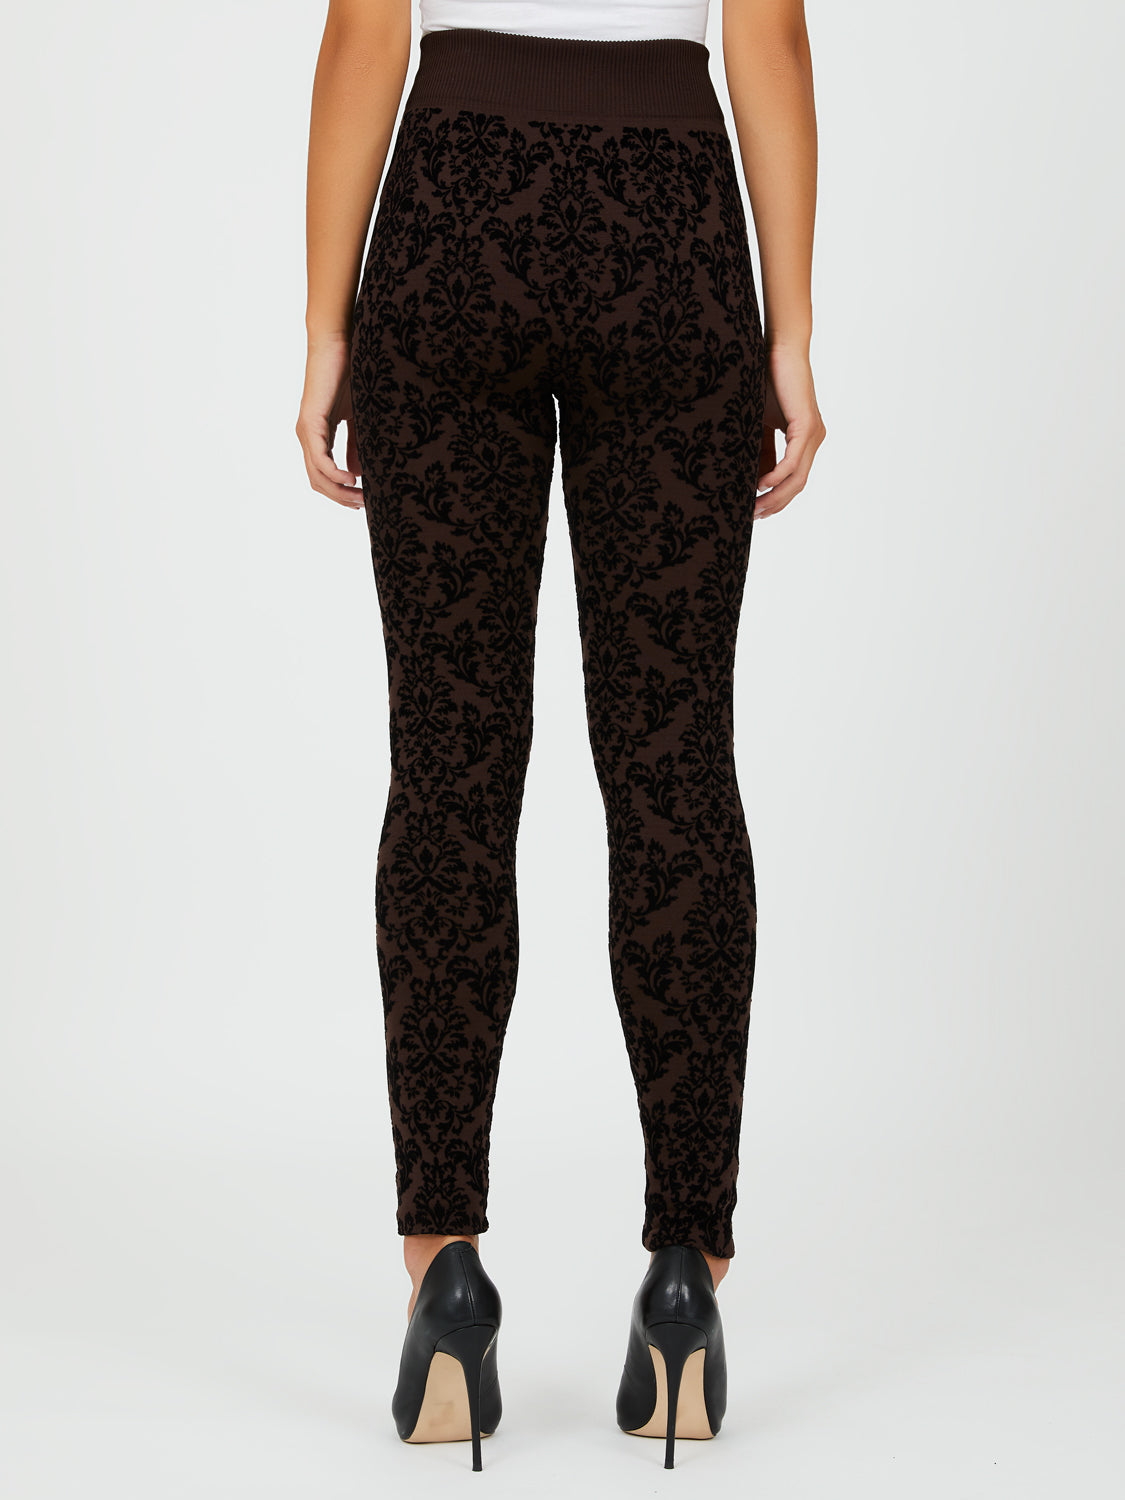 Brocade Flocked Leggings